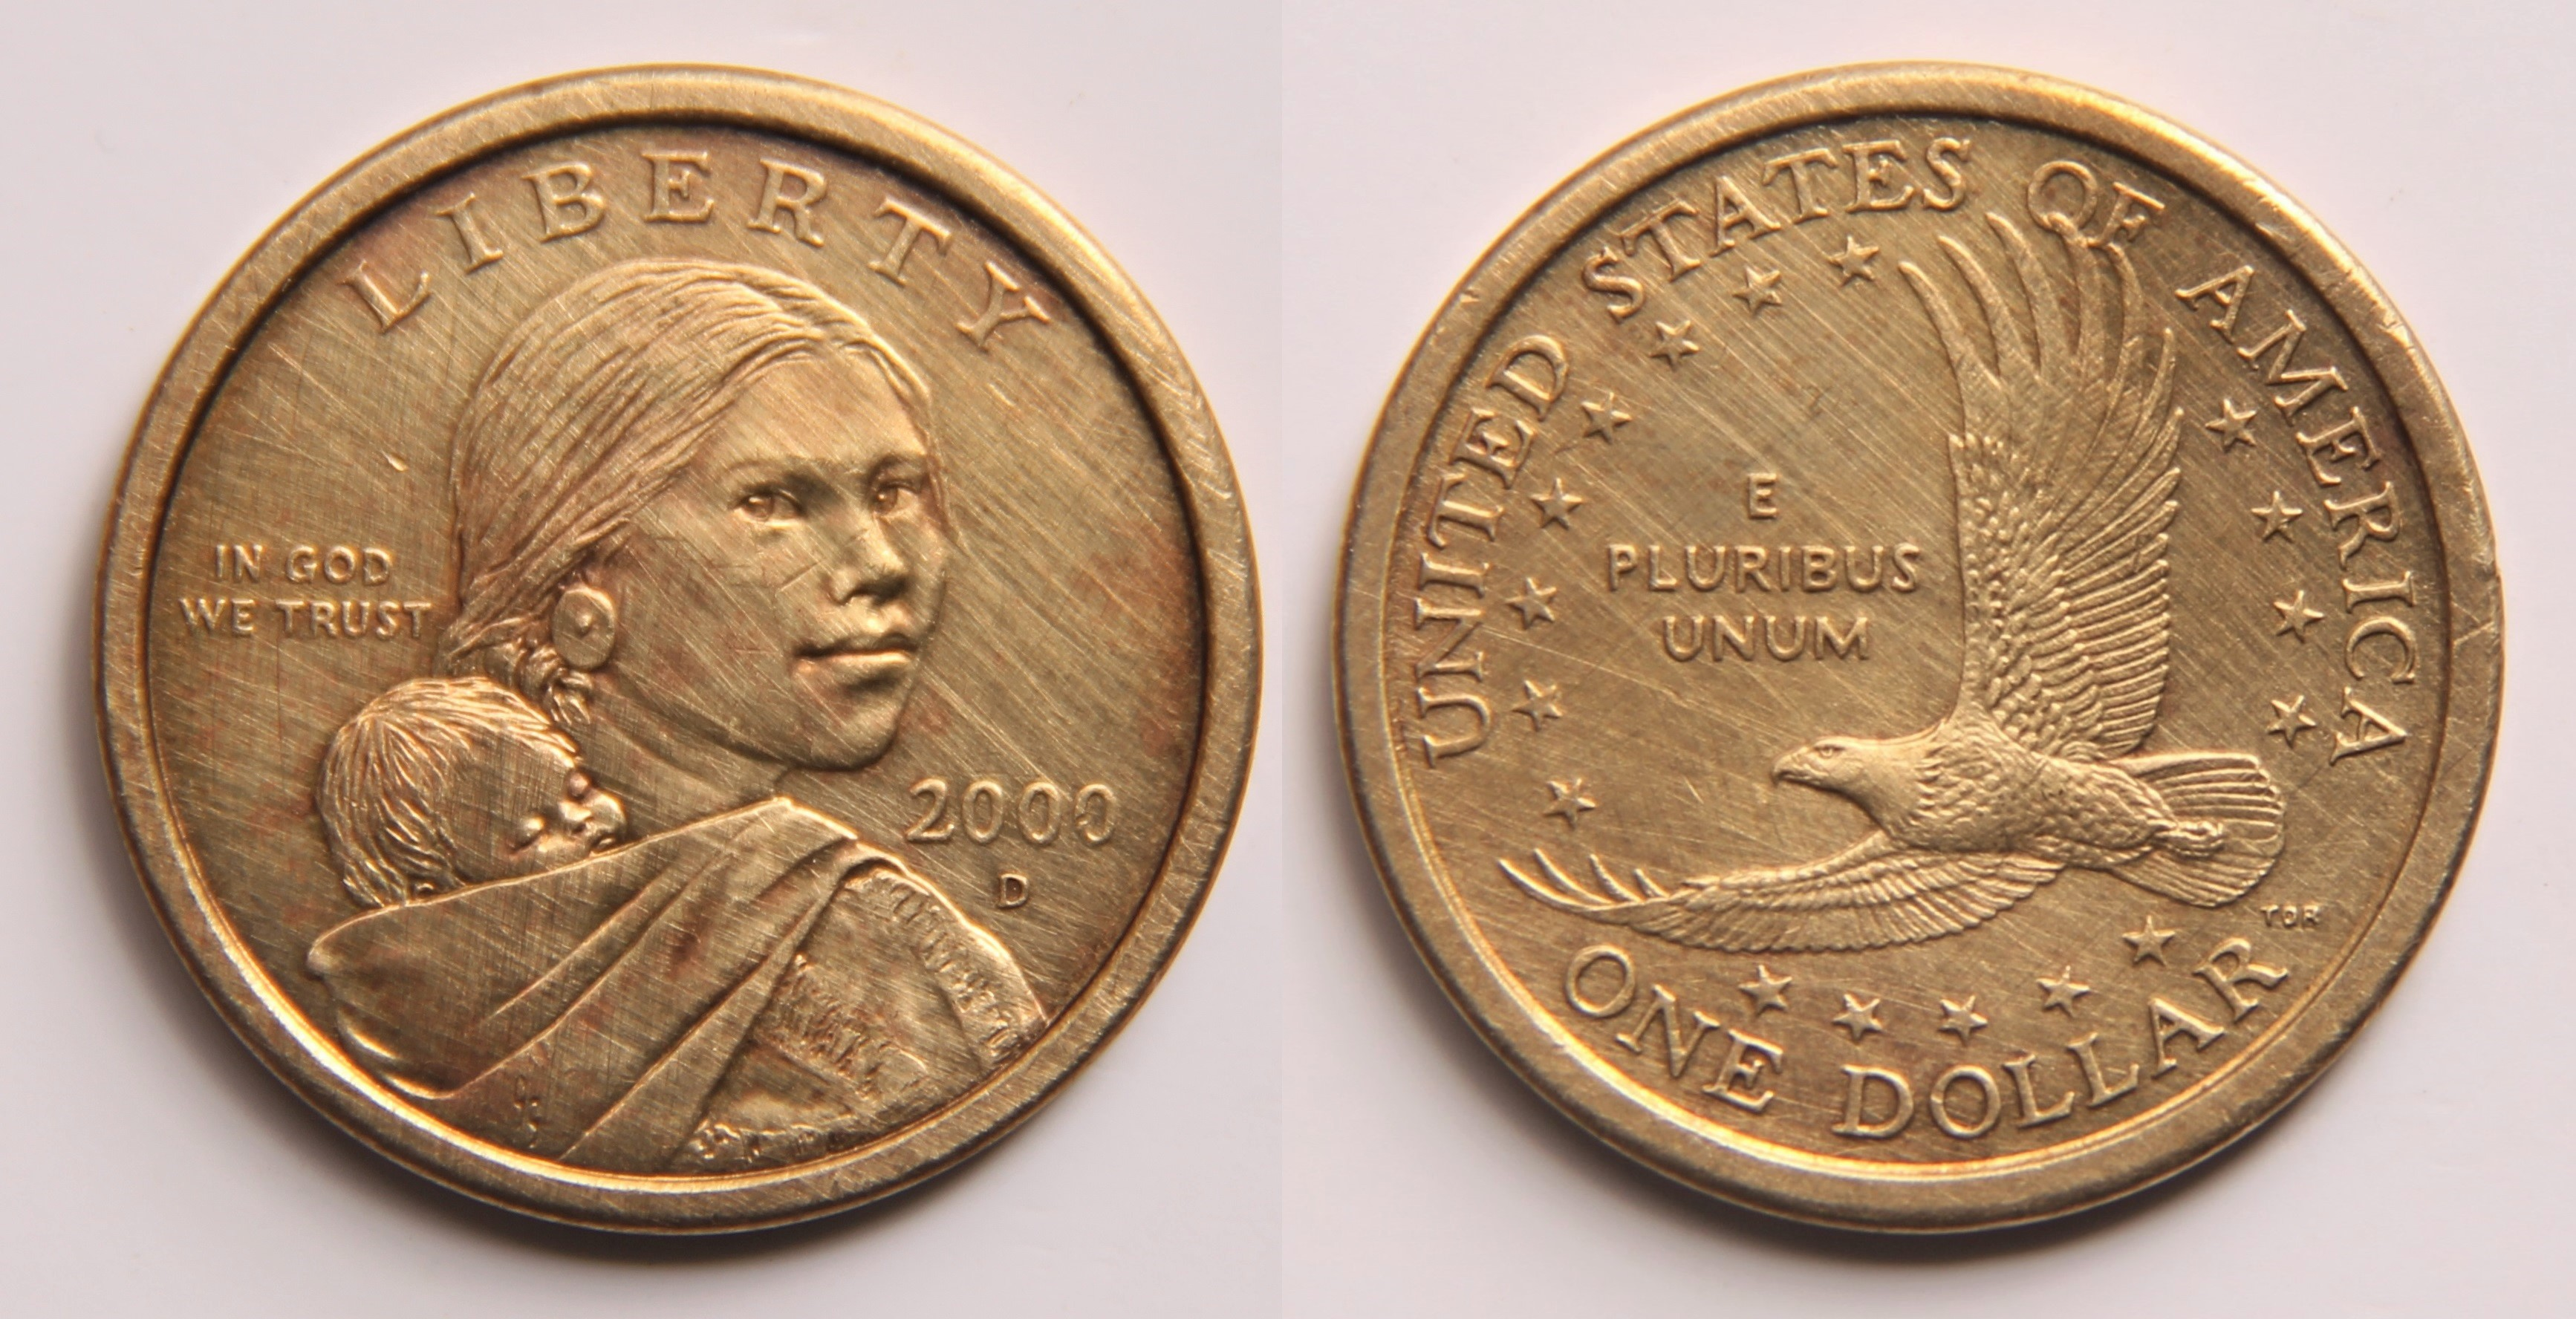 Alaska Native Civil Rights Leader To Be Featured On One Dollar Coin Knom Radio Mission